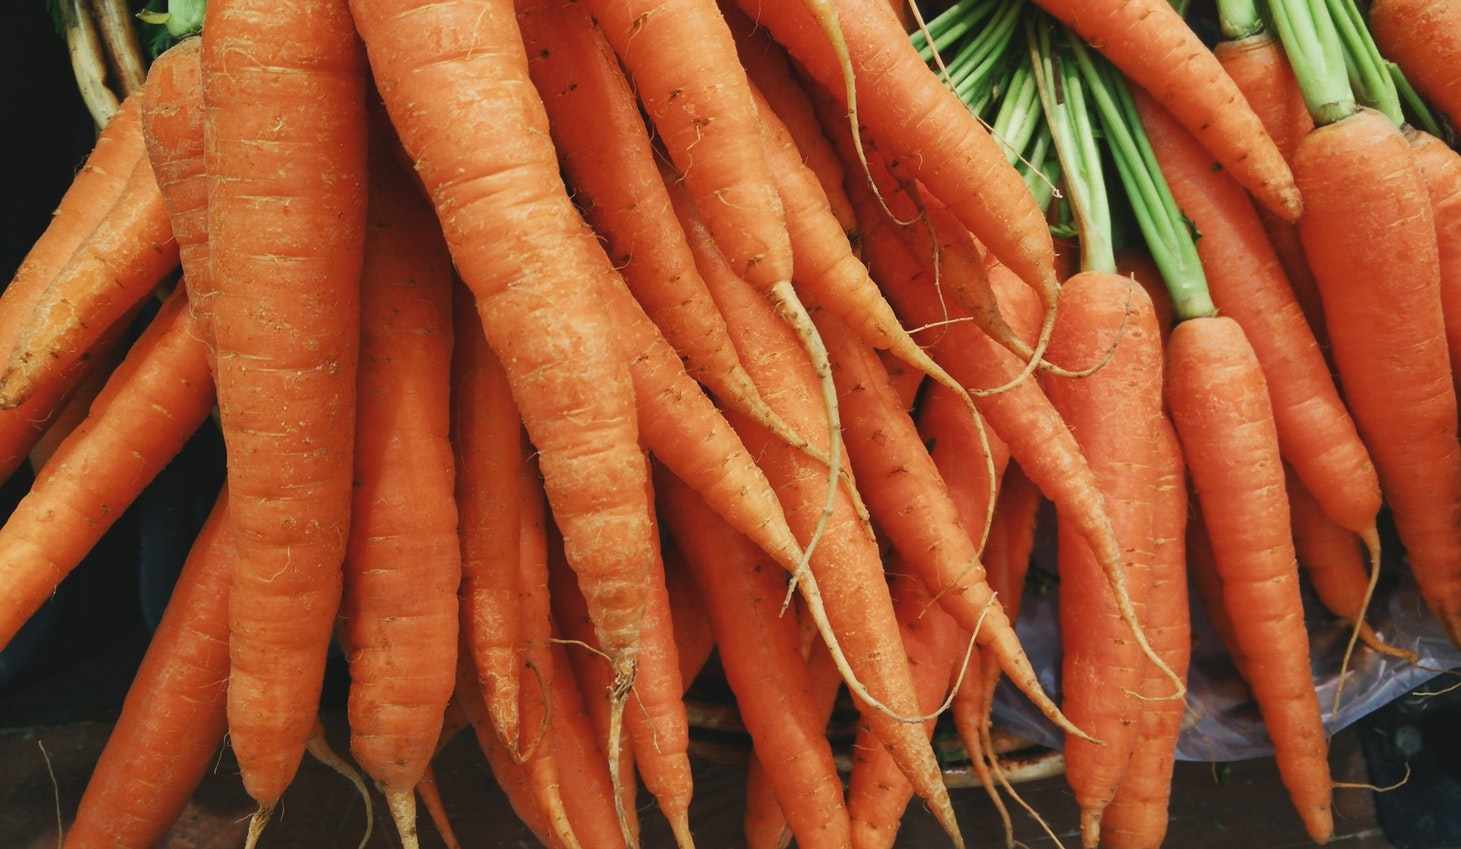 International Carrot Day!